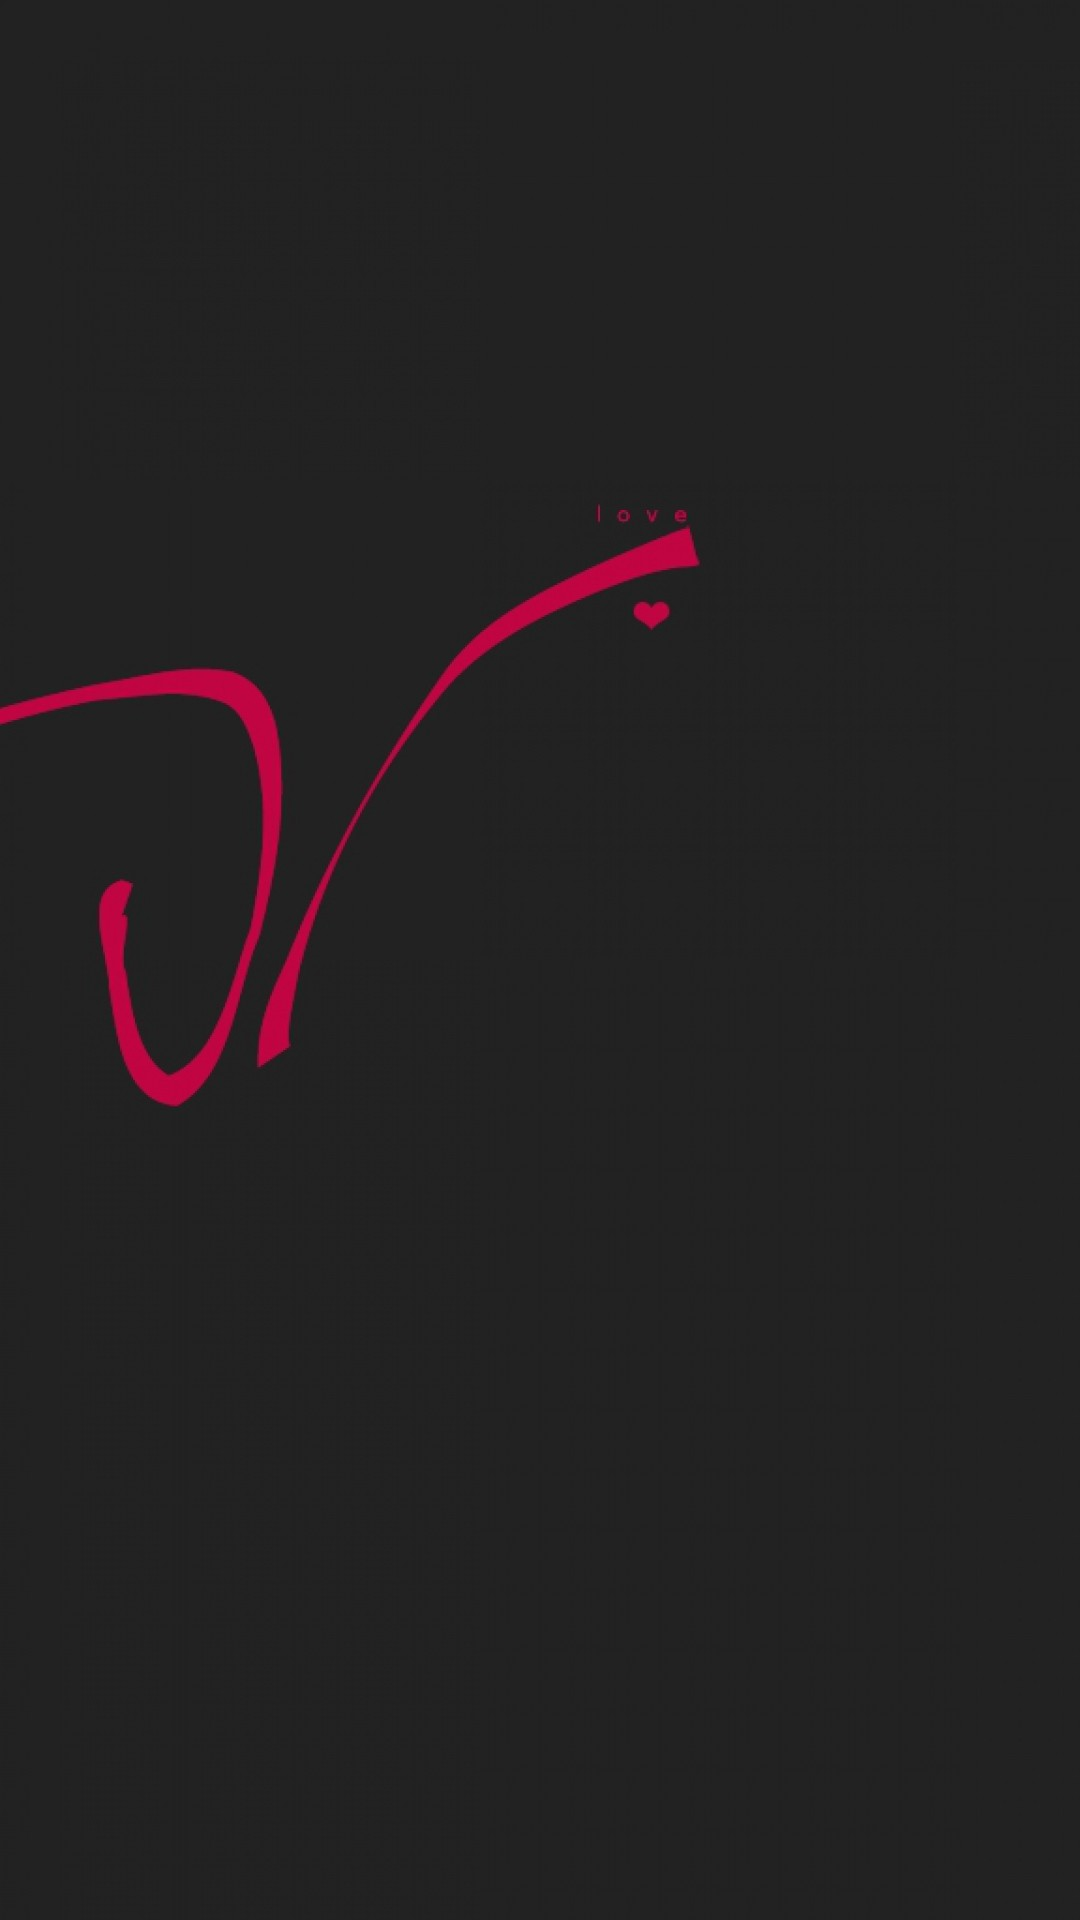 1080x1920 Preview wallpaper love, drawing, line, red, inscription, black